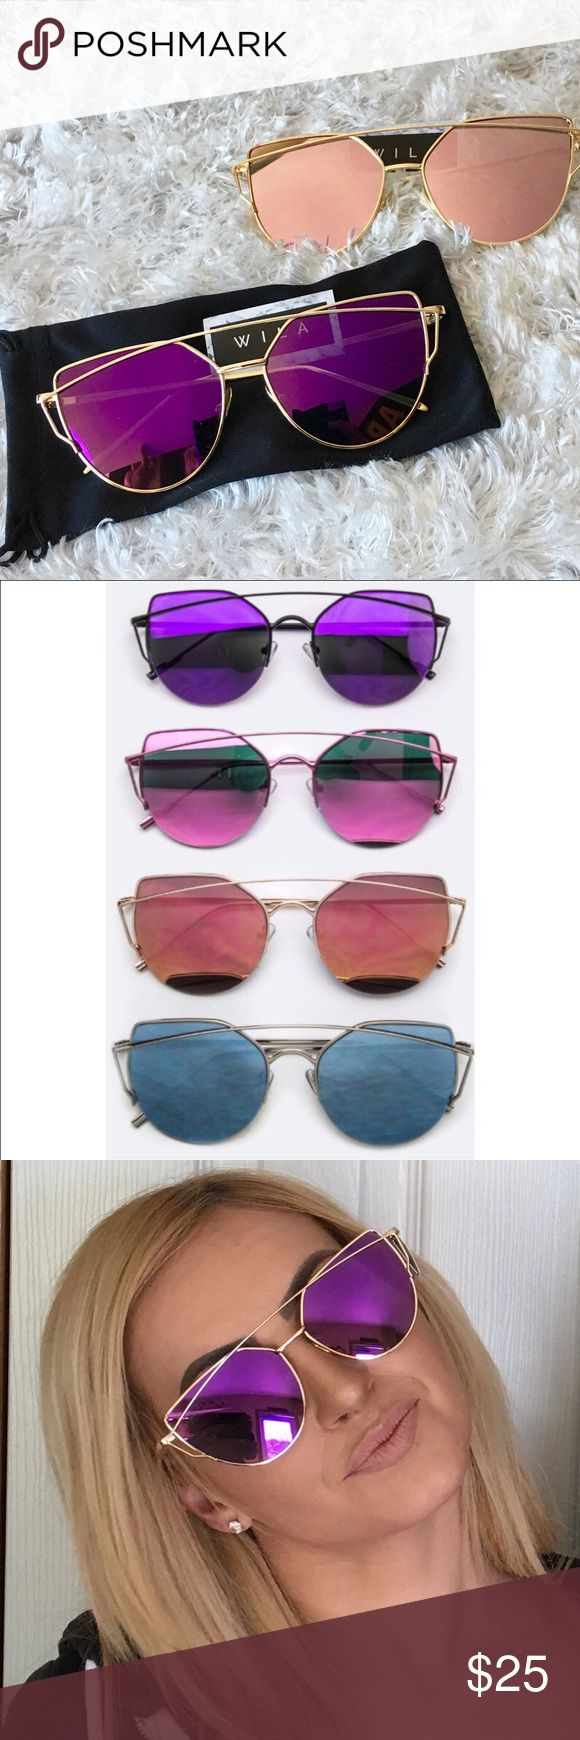 Cat eye sunglasses mirrored cat eye purple or pink These very trendy mirrored cat eye sunglasses look awesome! 2 pairs available in either purple or pink tone with gold rims.  Please note the sunglasses look lighter than they are but are dark and are uv protection all sunglasses come with a black case🎀bundle to receive discount. WILA Accessories Sunglasses